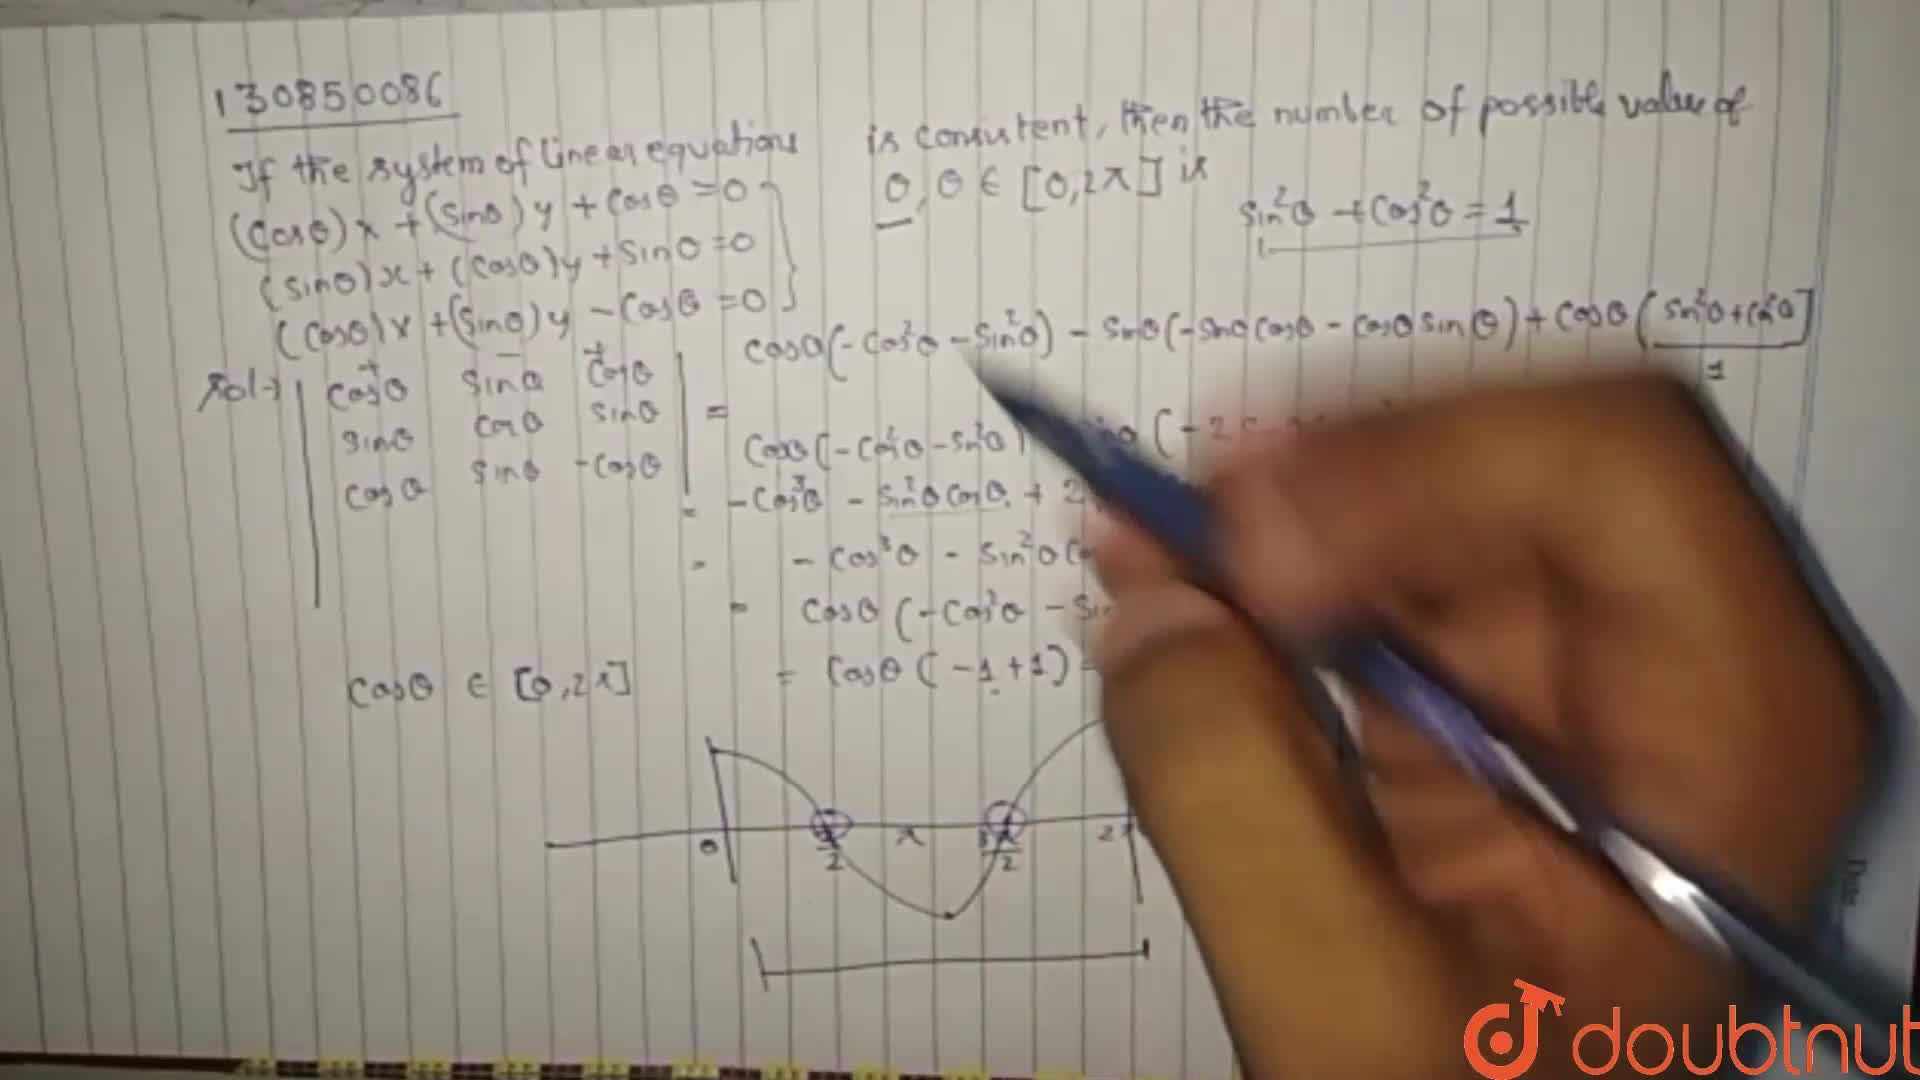 Solution for If the system of linear equations ( costheta)x+ (